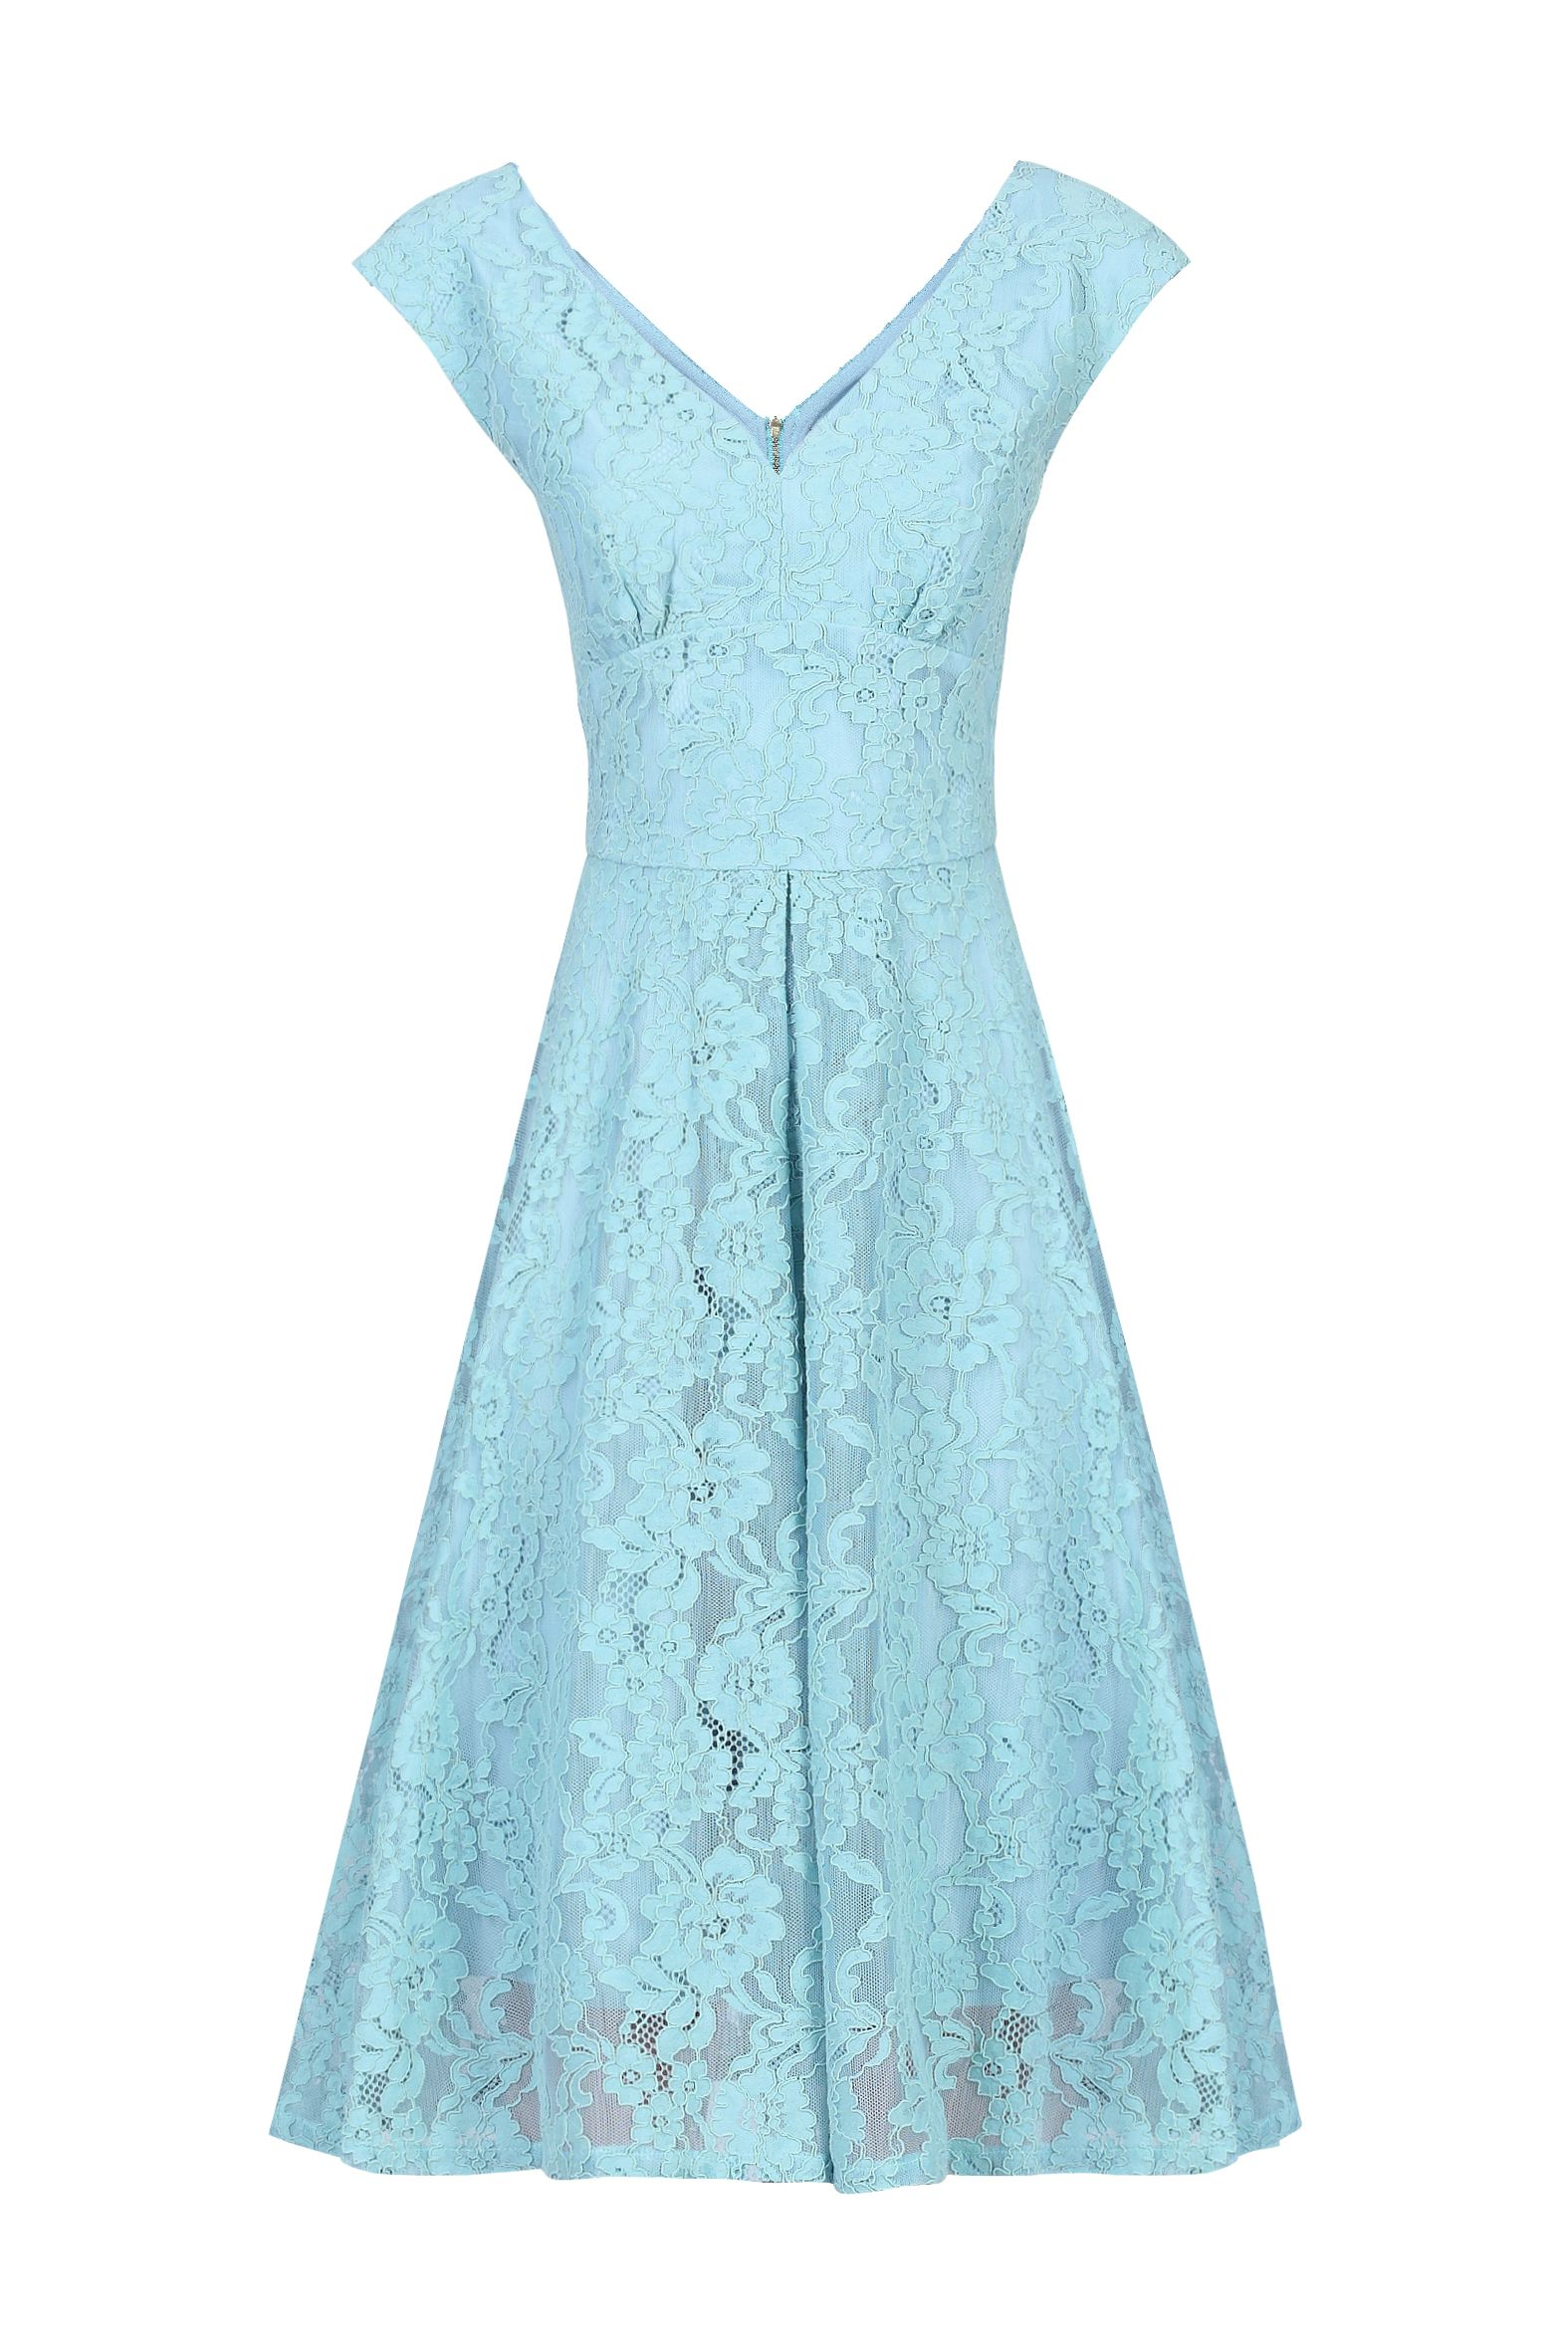 Jolie Moi Sweetheart Neckline 50s Lace Dress, Green